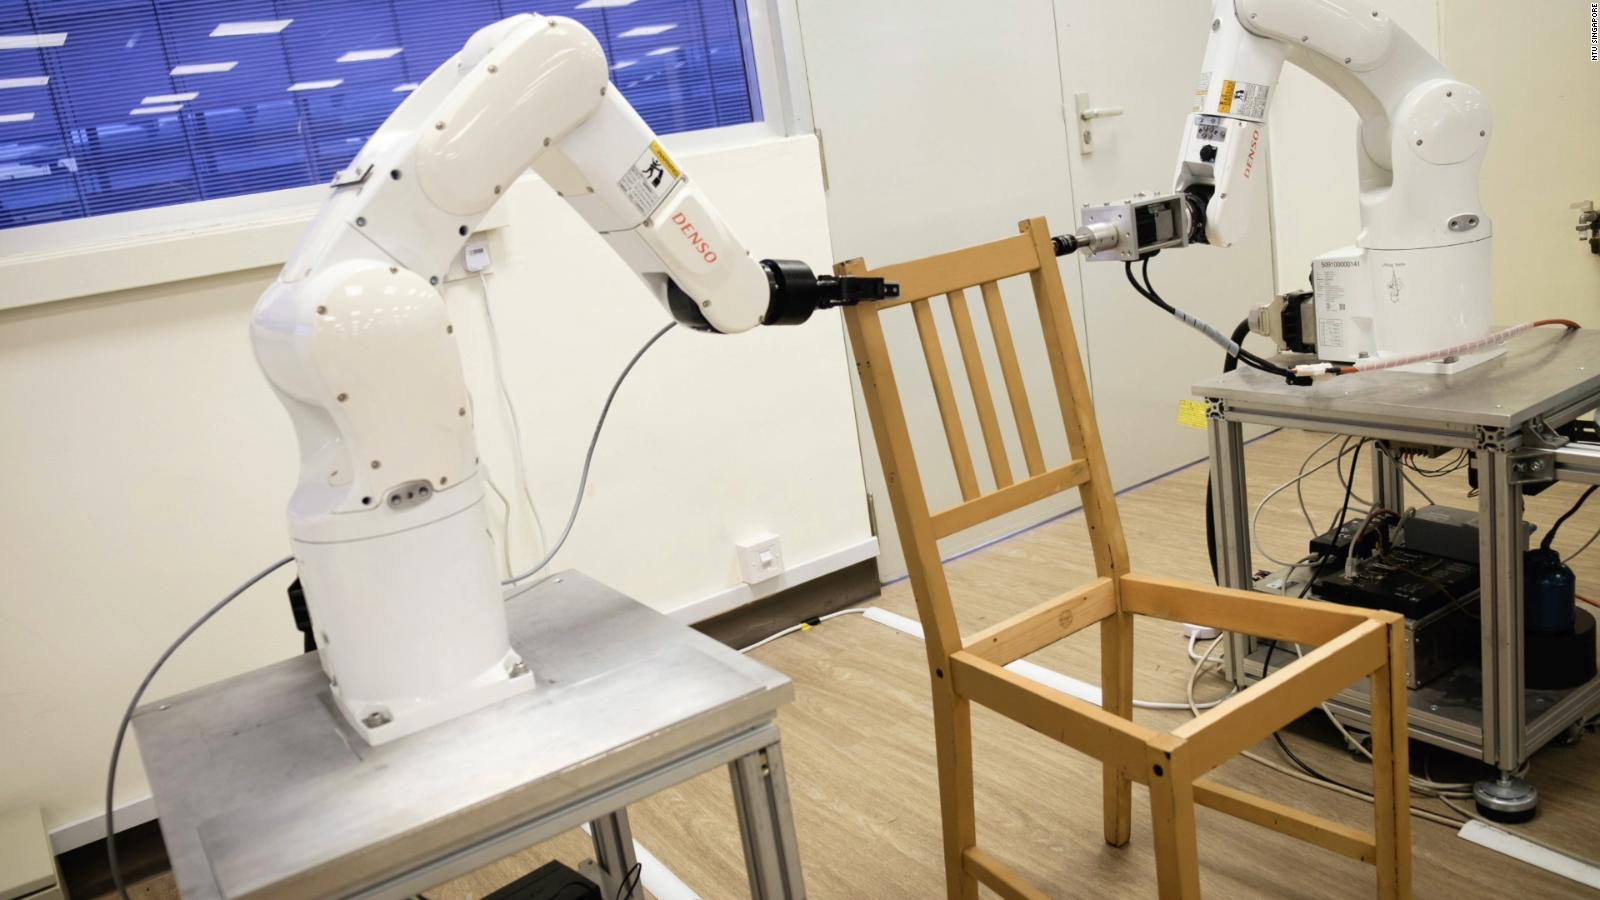 Ikea Bank Code Watch This Robot Build An Ikea Chair In Minutes